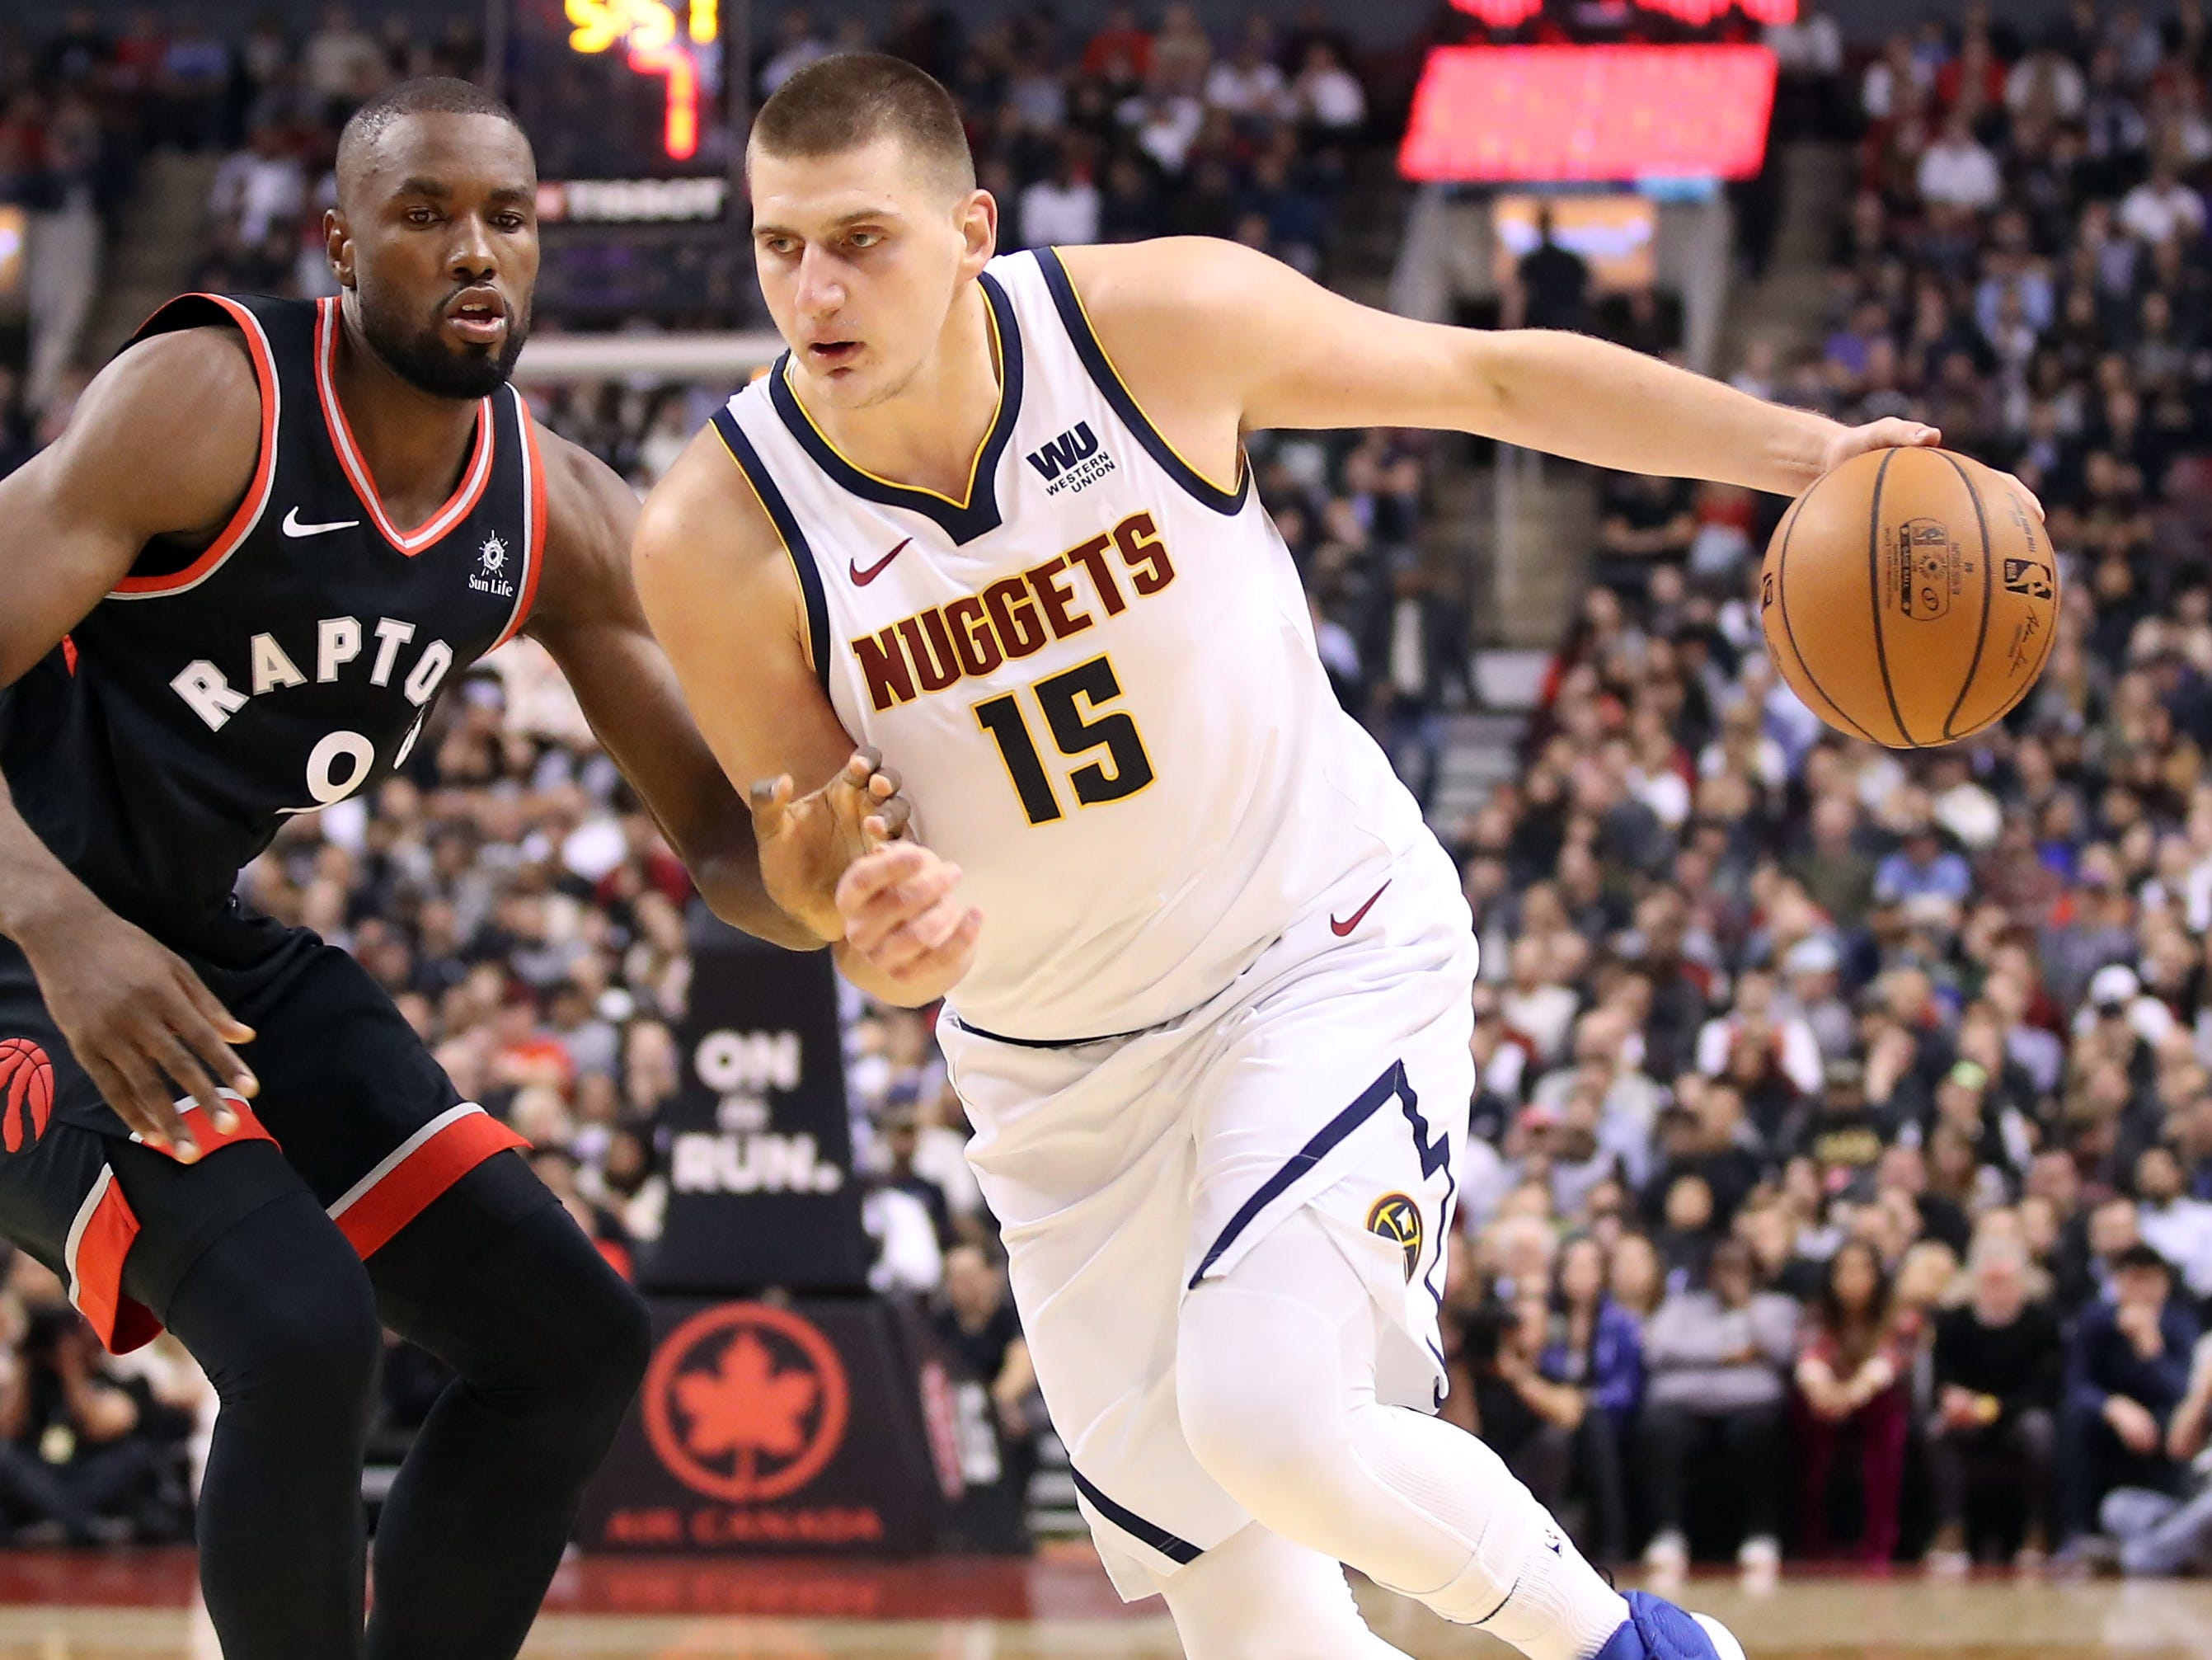 18. Nikola Jokic, Nuggets (Dec. 3): 23 points, 15 assists, 11 rebounds in 106-103 win over Raptors (second of season).